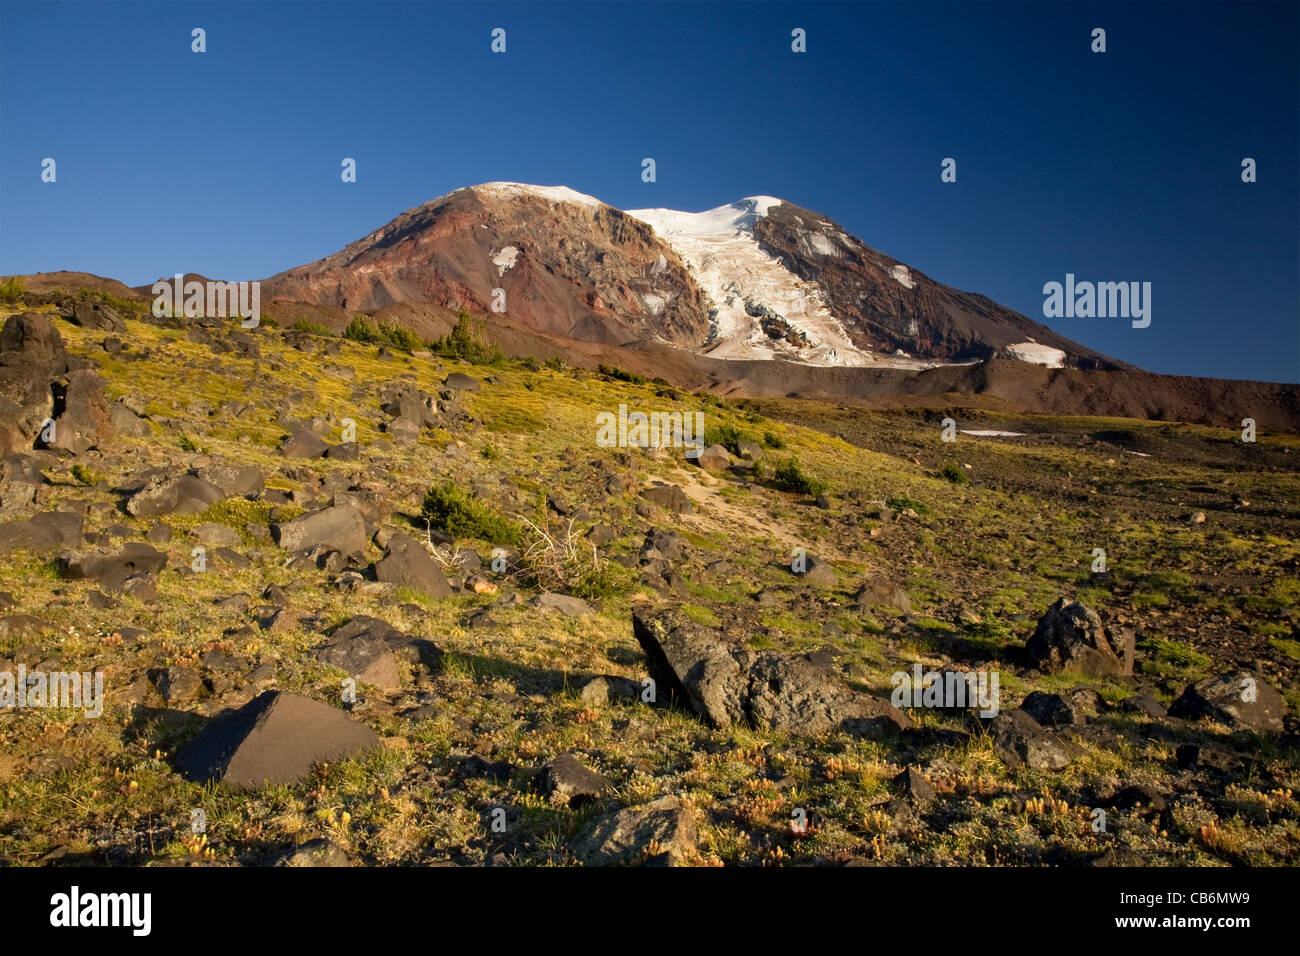 Alpine Meadow At High Camp Below The Adams Glacier Climbing Route On Mount Adams In The Mount Adams Wilderness Area